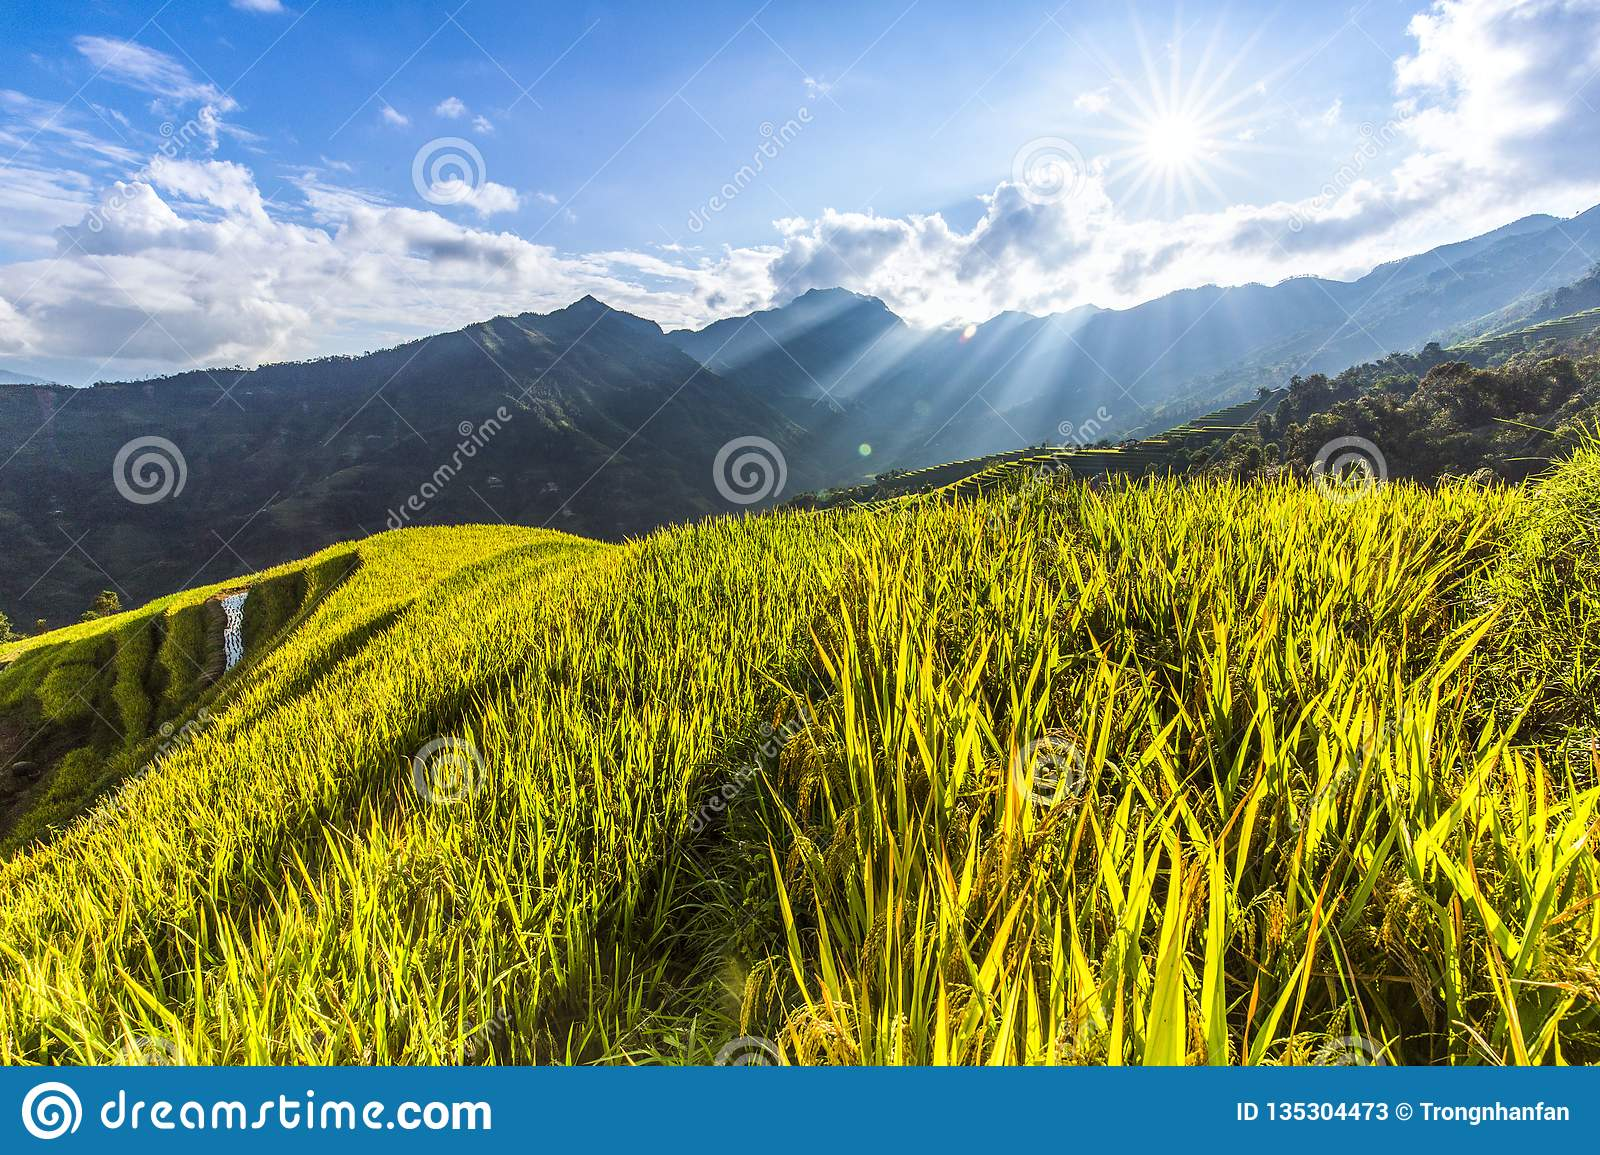 Beautiful Landscape of golden rice field or paddy field with blue sky and cloud